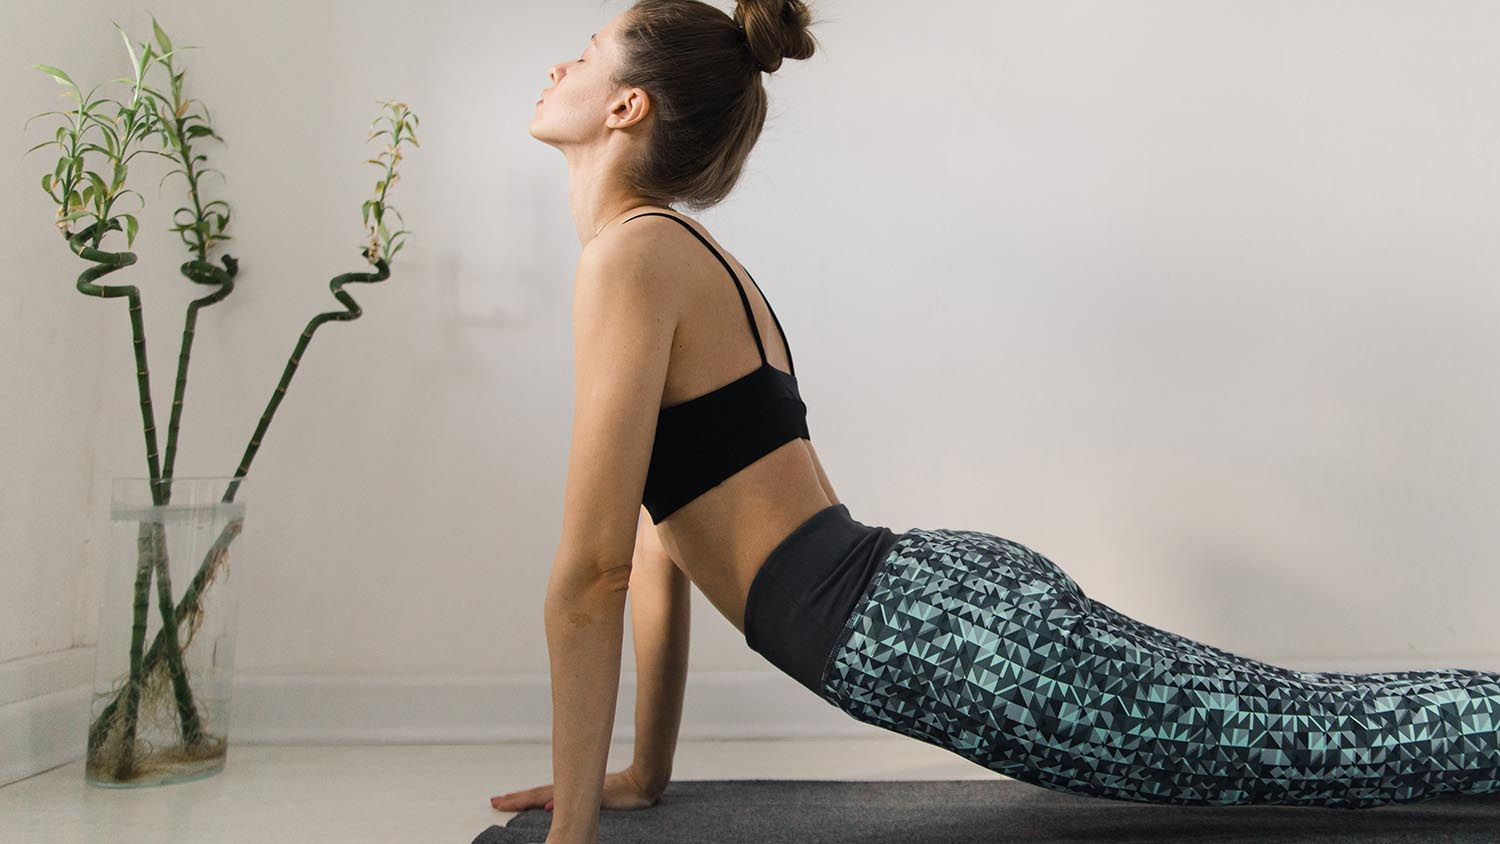 A young woman doing yoga inside